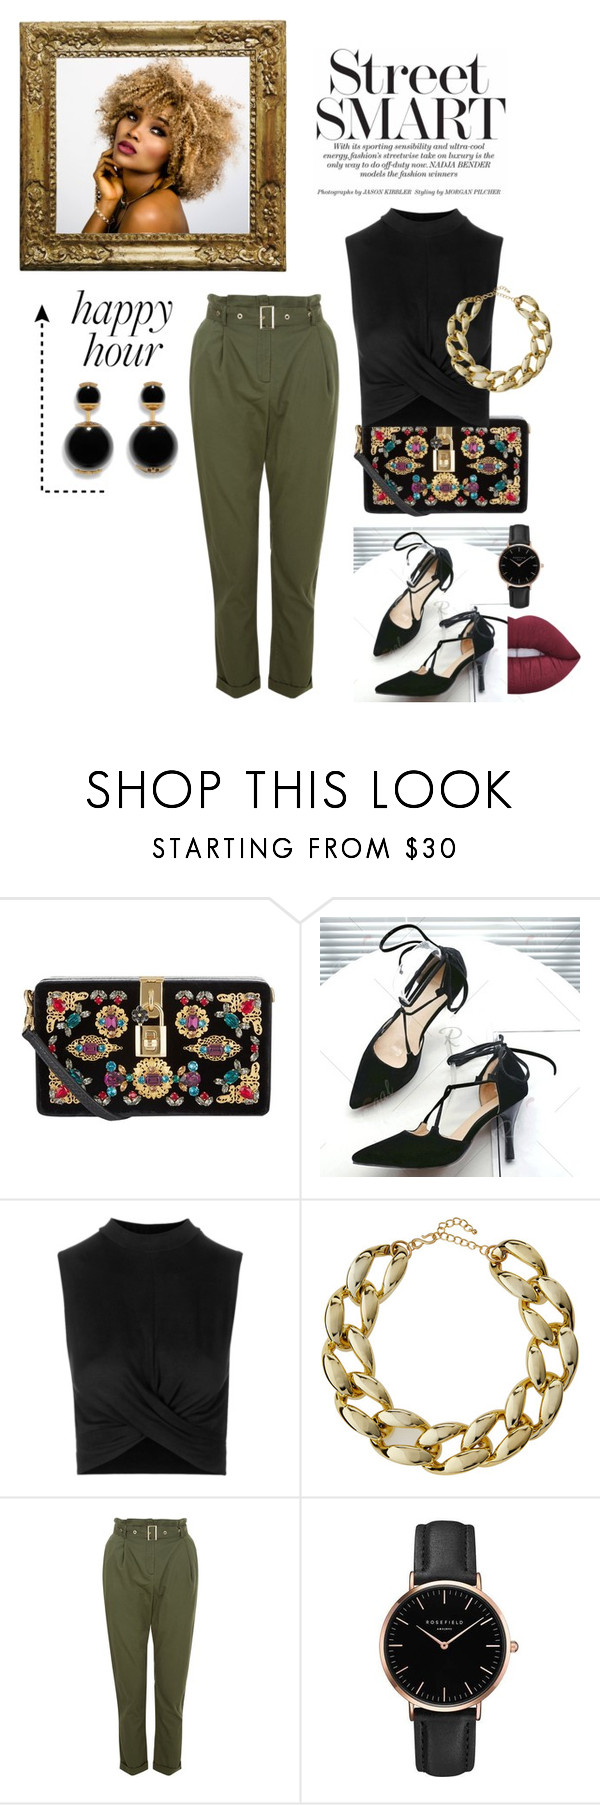 """Street smart"" by yessyzc on Polyvore featuring moda, Dolce&Gabbana, Topshop, Kenneth Jay Lane y Lime Crime"